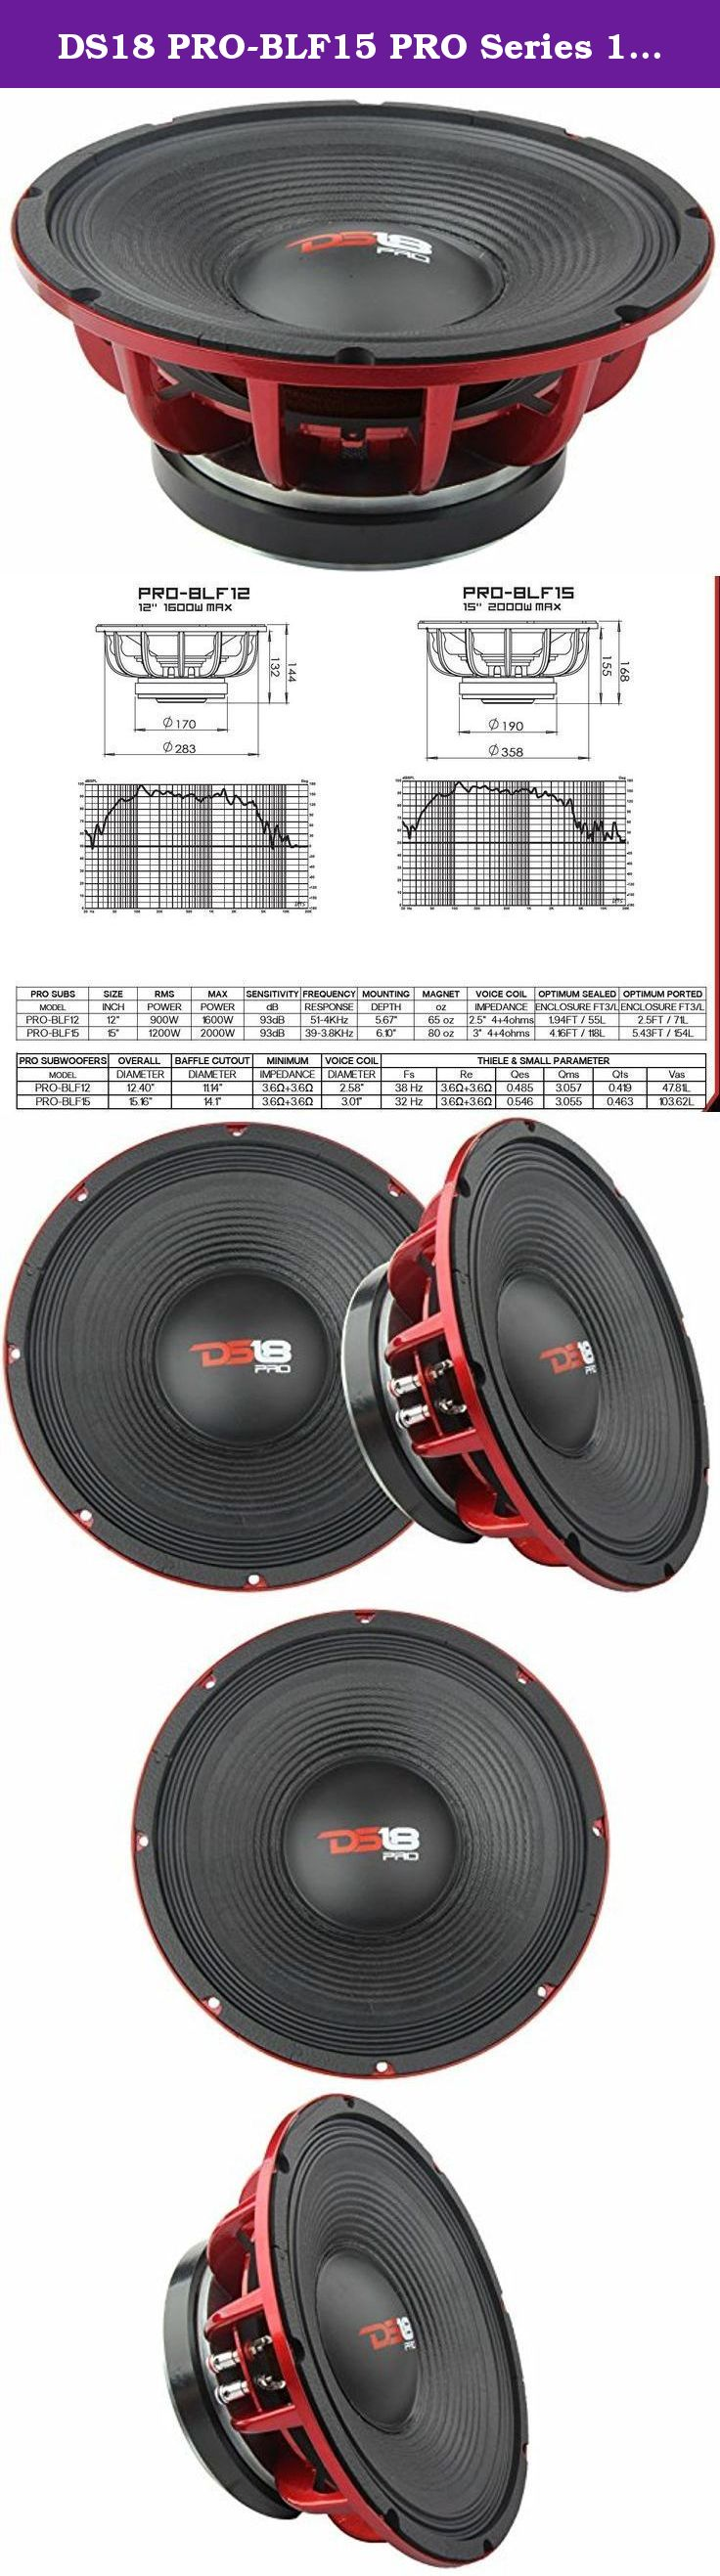 Ds18 Pro Blf15 Series 15 Inch 2000 Watts Subwoofer Engi 1 Engineered And Designed